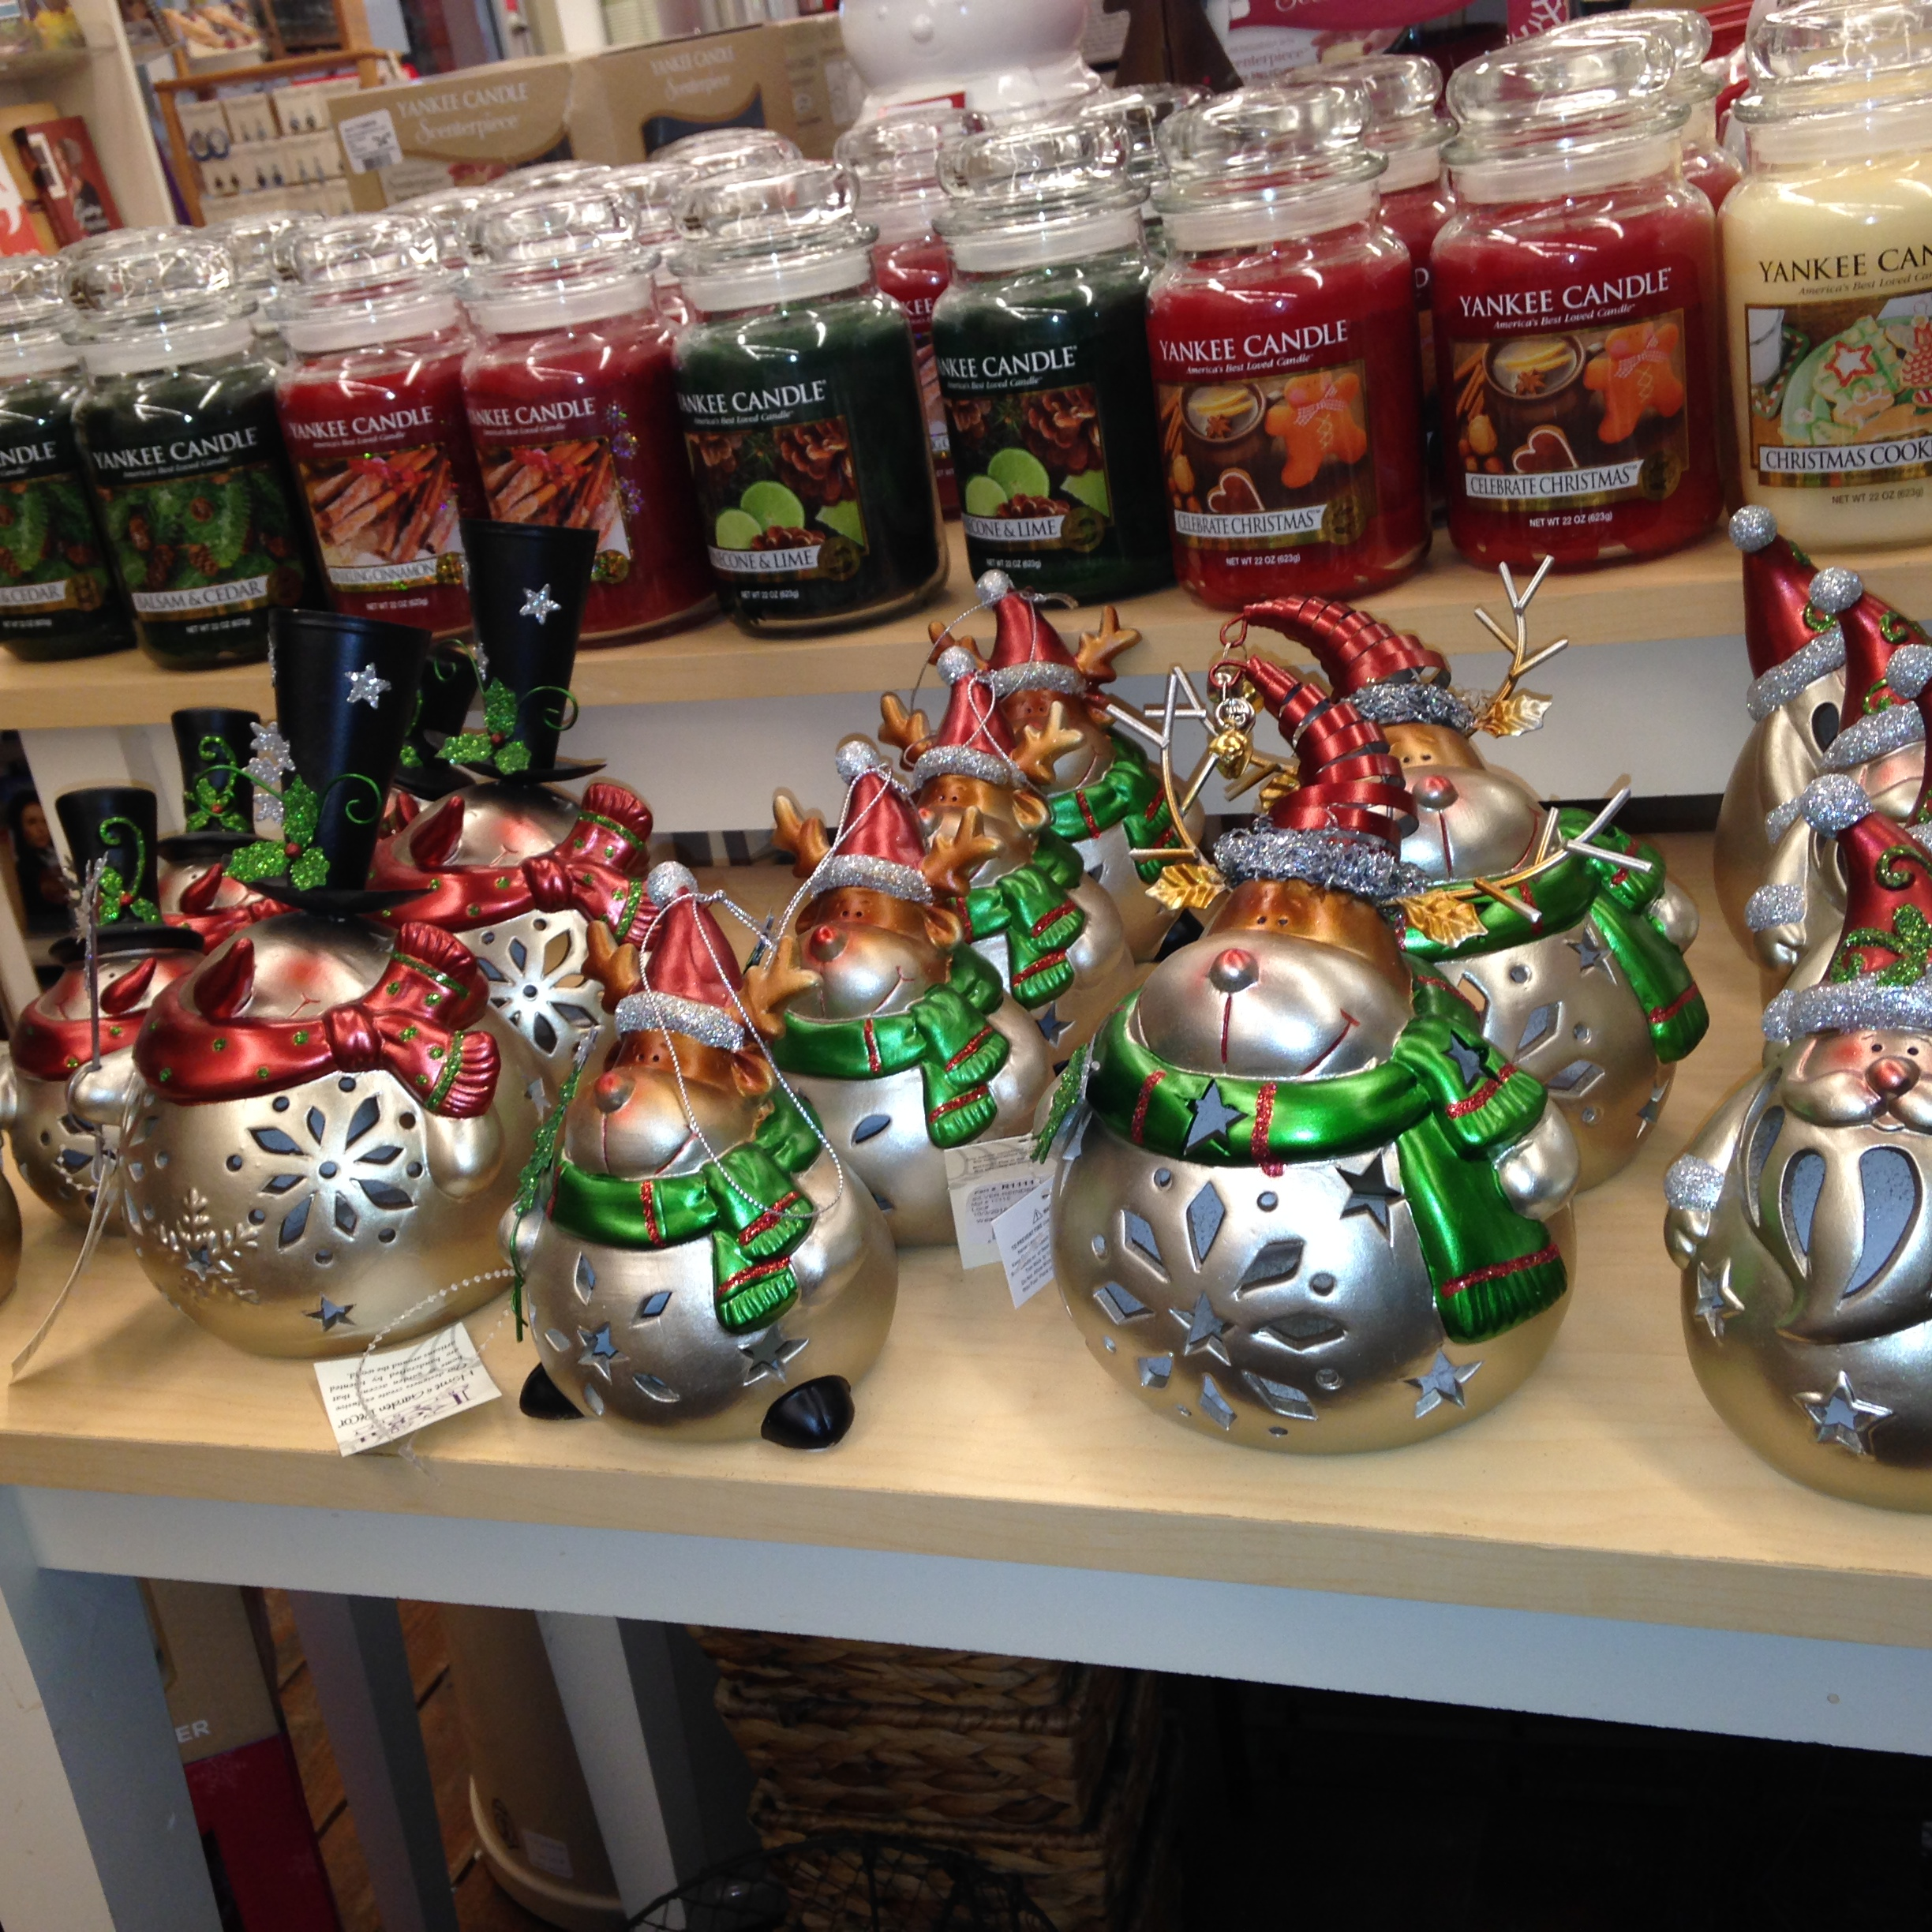 Ace Hardware Decorations 28 Images Decorations Ace Hardware In Kuwait The 2015 Mantel The